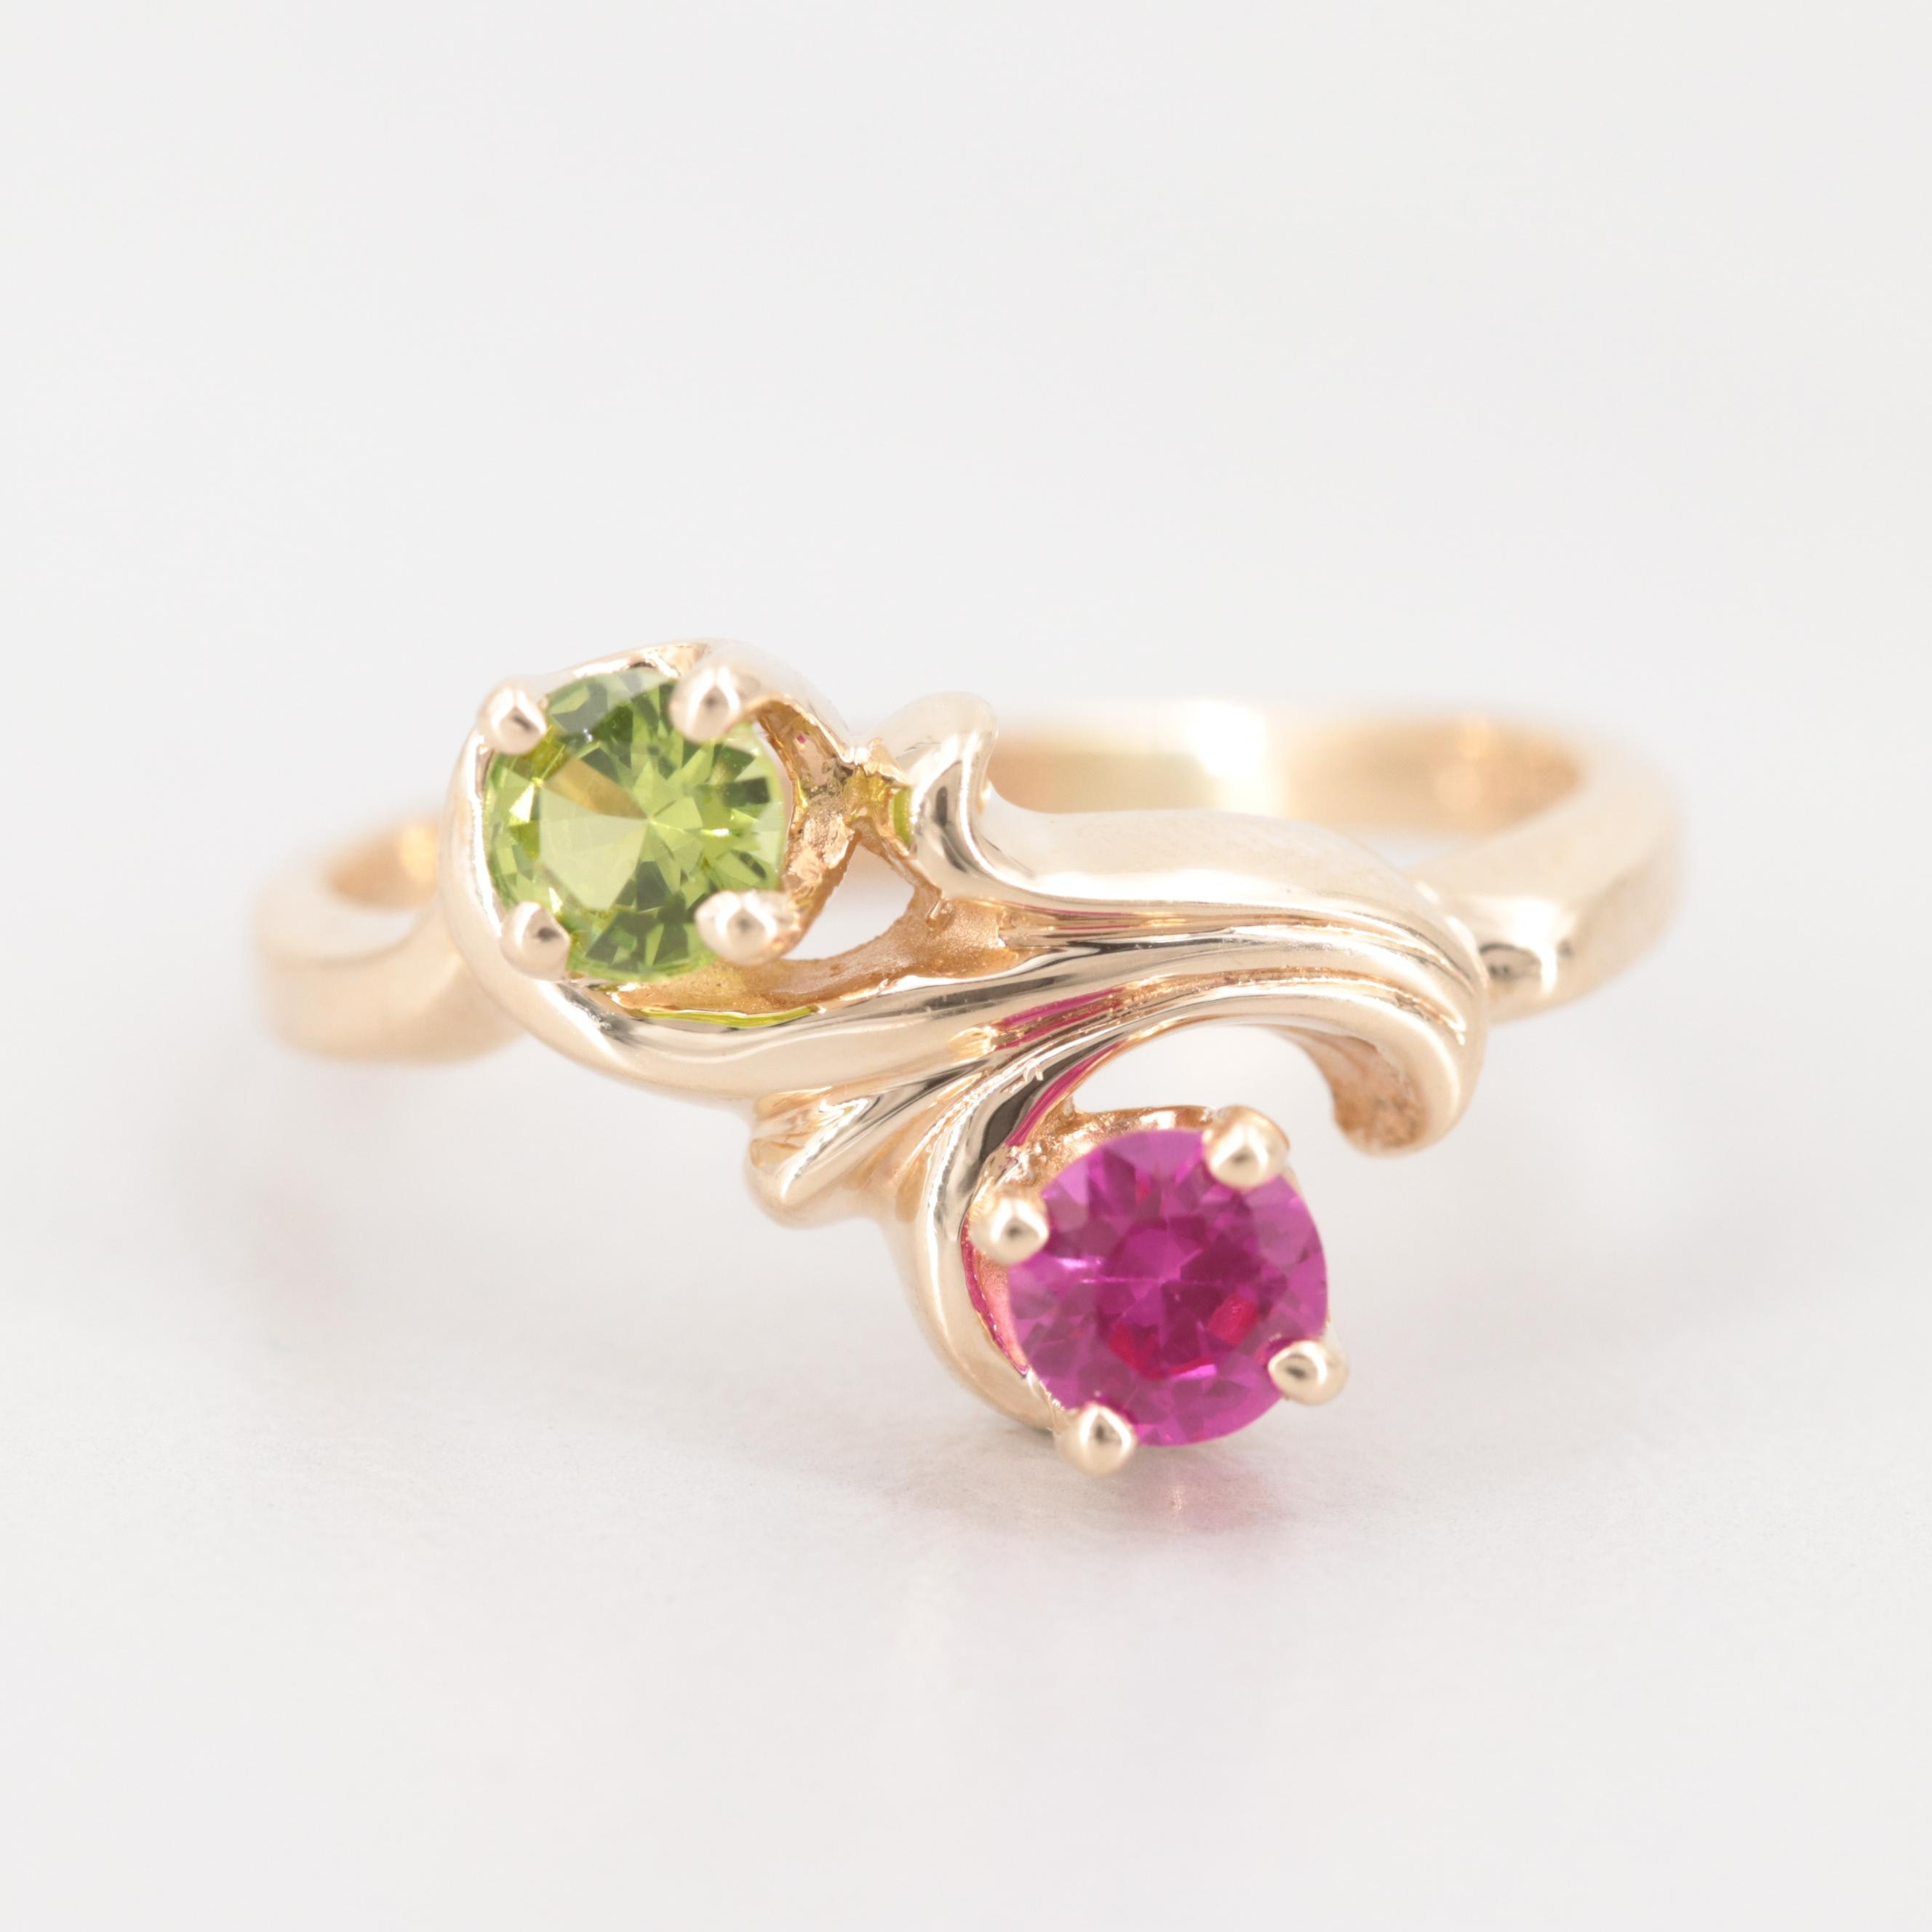 10K Yellow Gold Synthetic Ruby and Synthetic Spinel Triplet Bypass Ring